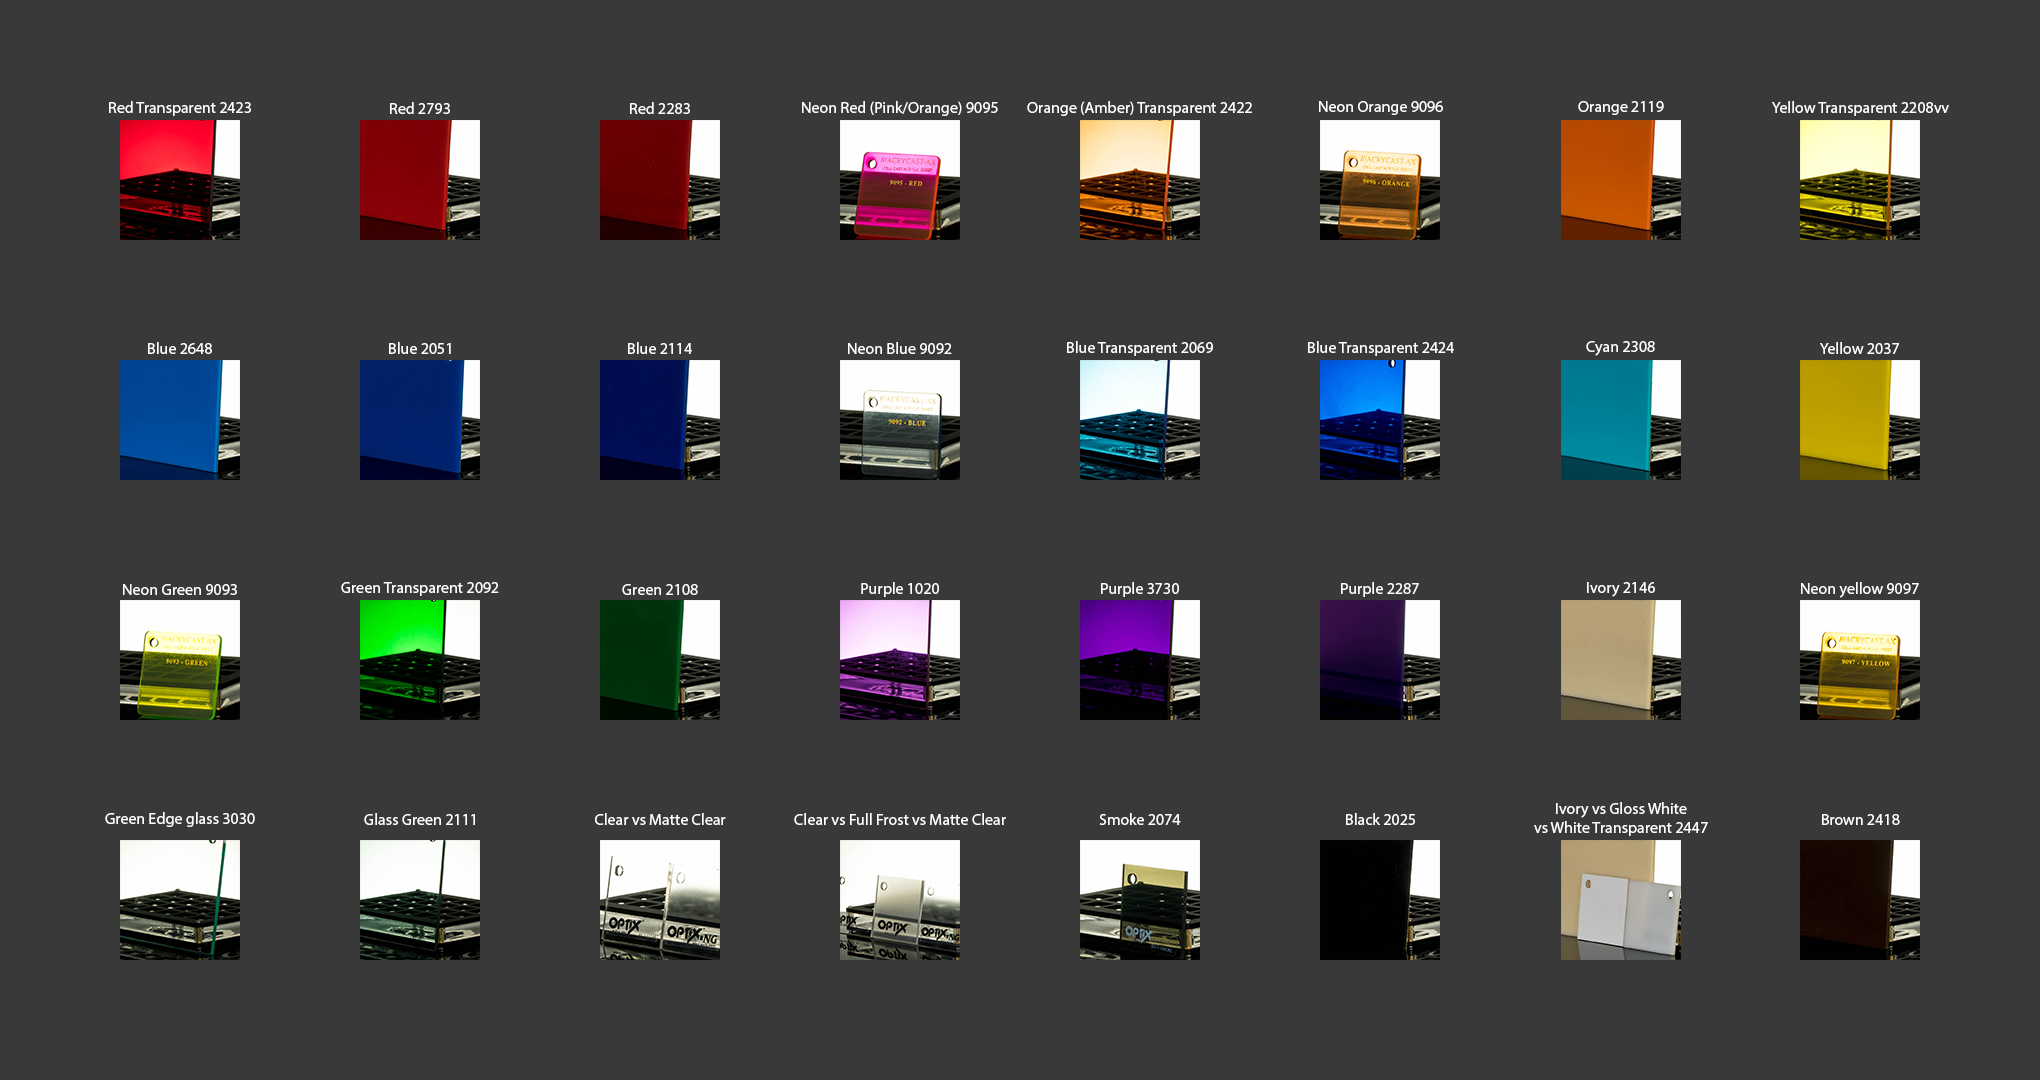 Acrylic Color samples. Currently Full Frost is the only color unavailable.  Matte Colors (matte clear, white, black, etc) only have the top surface with the matte finish. The sides of these layers will look the same as the normal gloss color's sides.